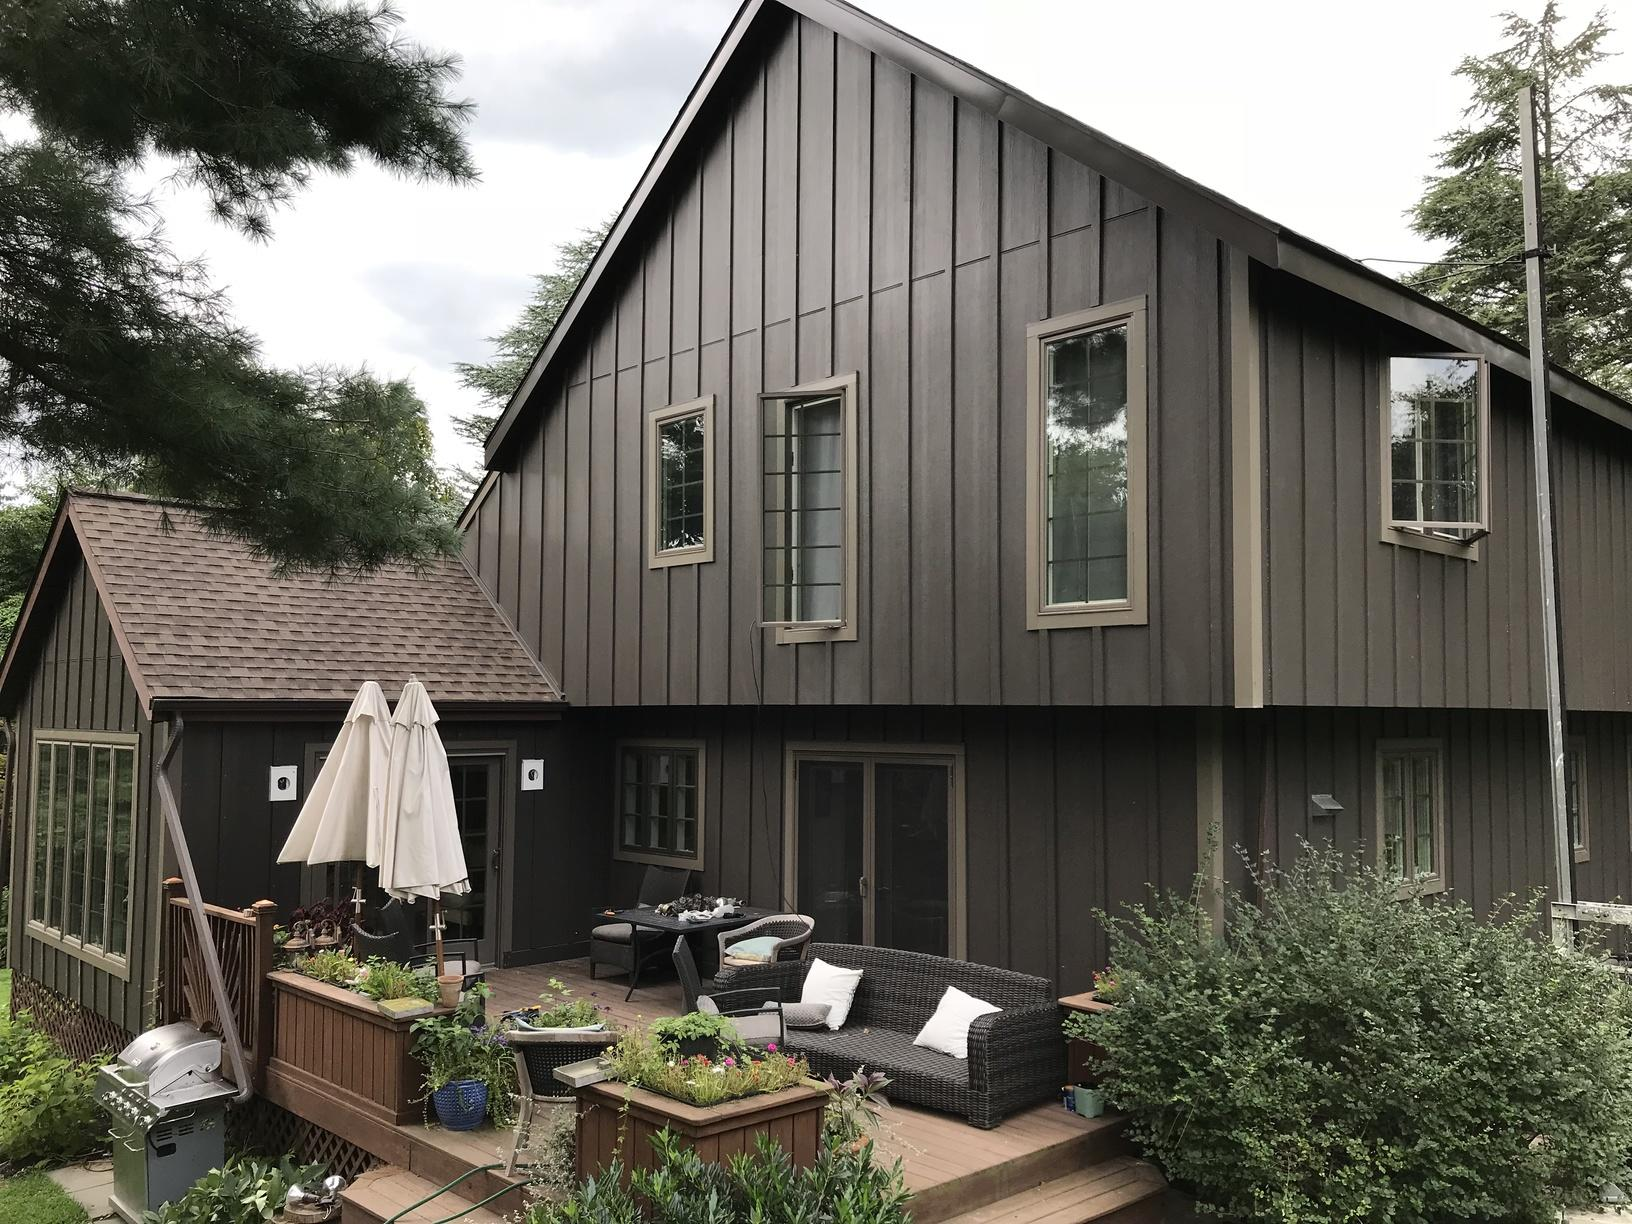 Installing Rich Espresso James Hardie Vertical Siding and Replacing Windows, Patio Door, and Trim in Doylestown, PA